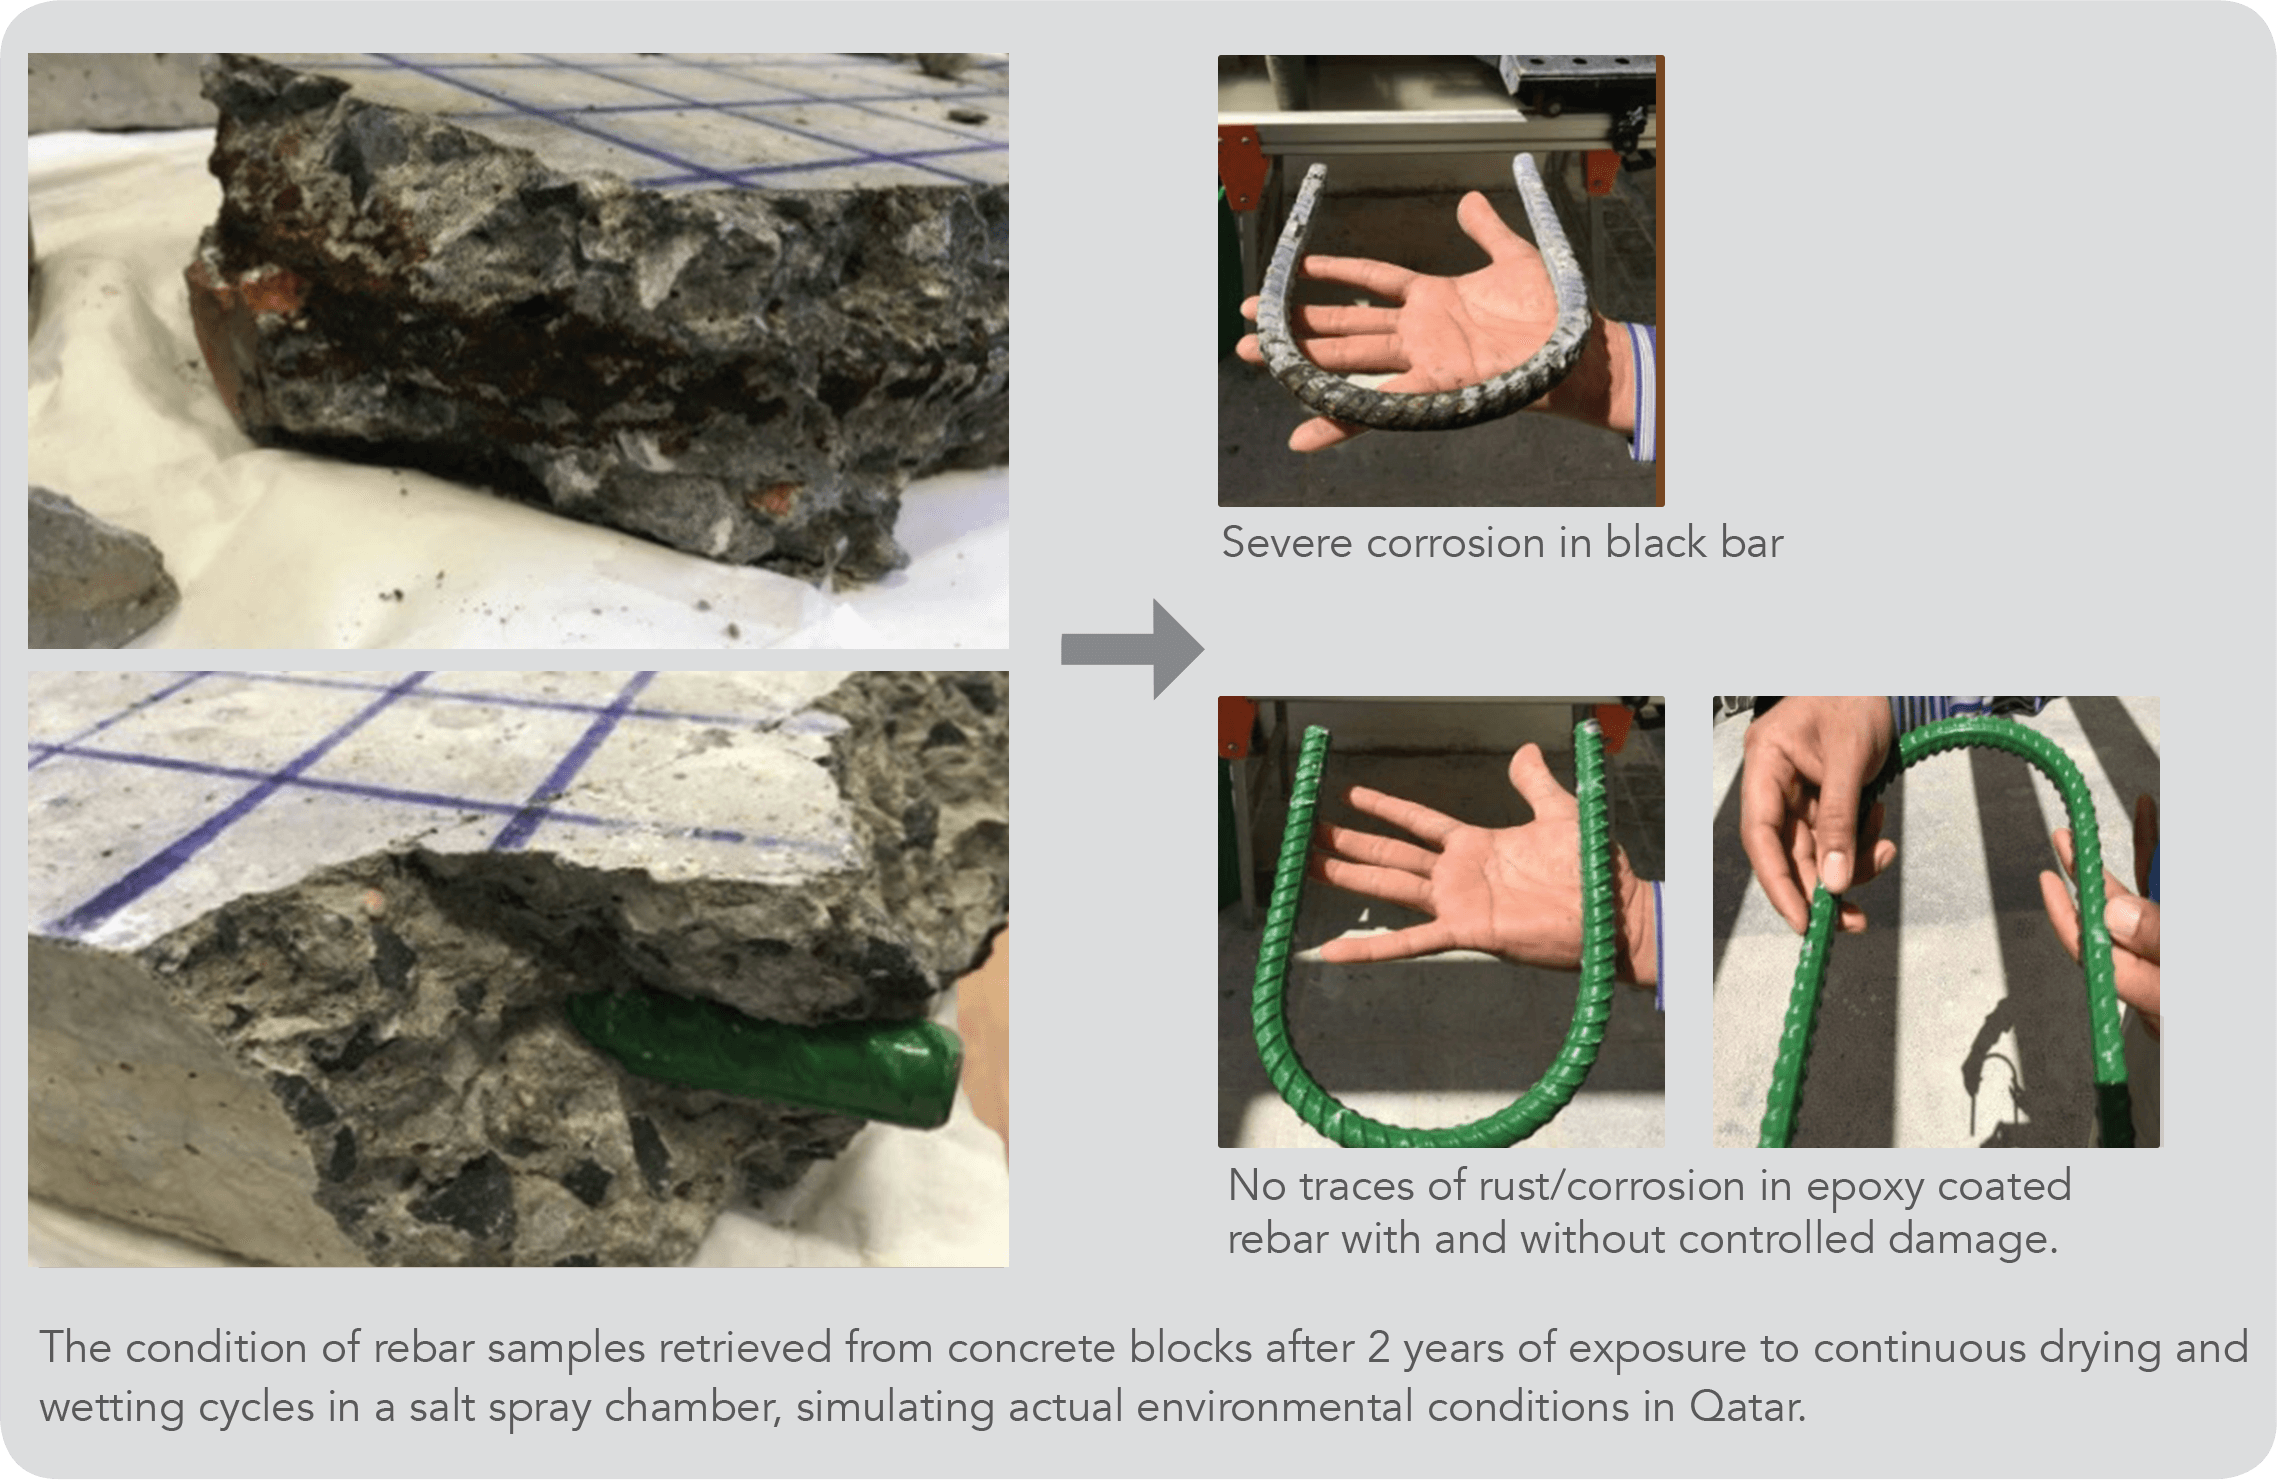 Research on Corrosion Performance of Epoxy Coated Rebar